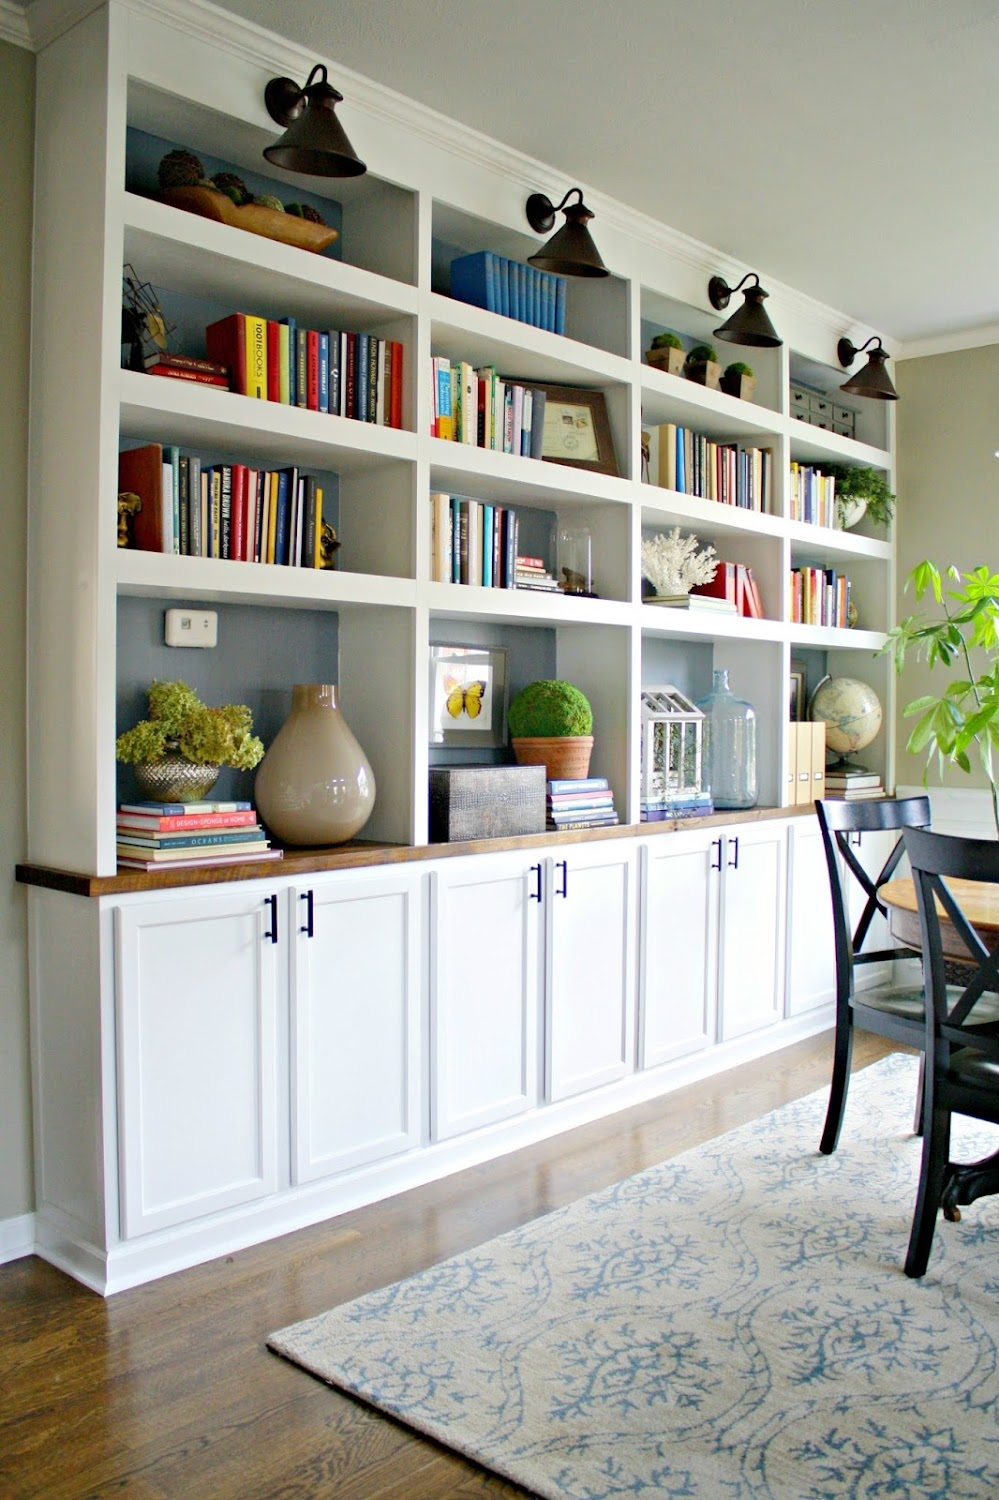 DIY bookcases from kitchen cabinets